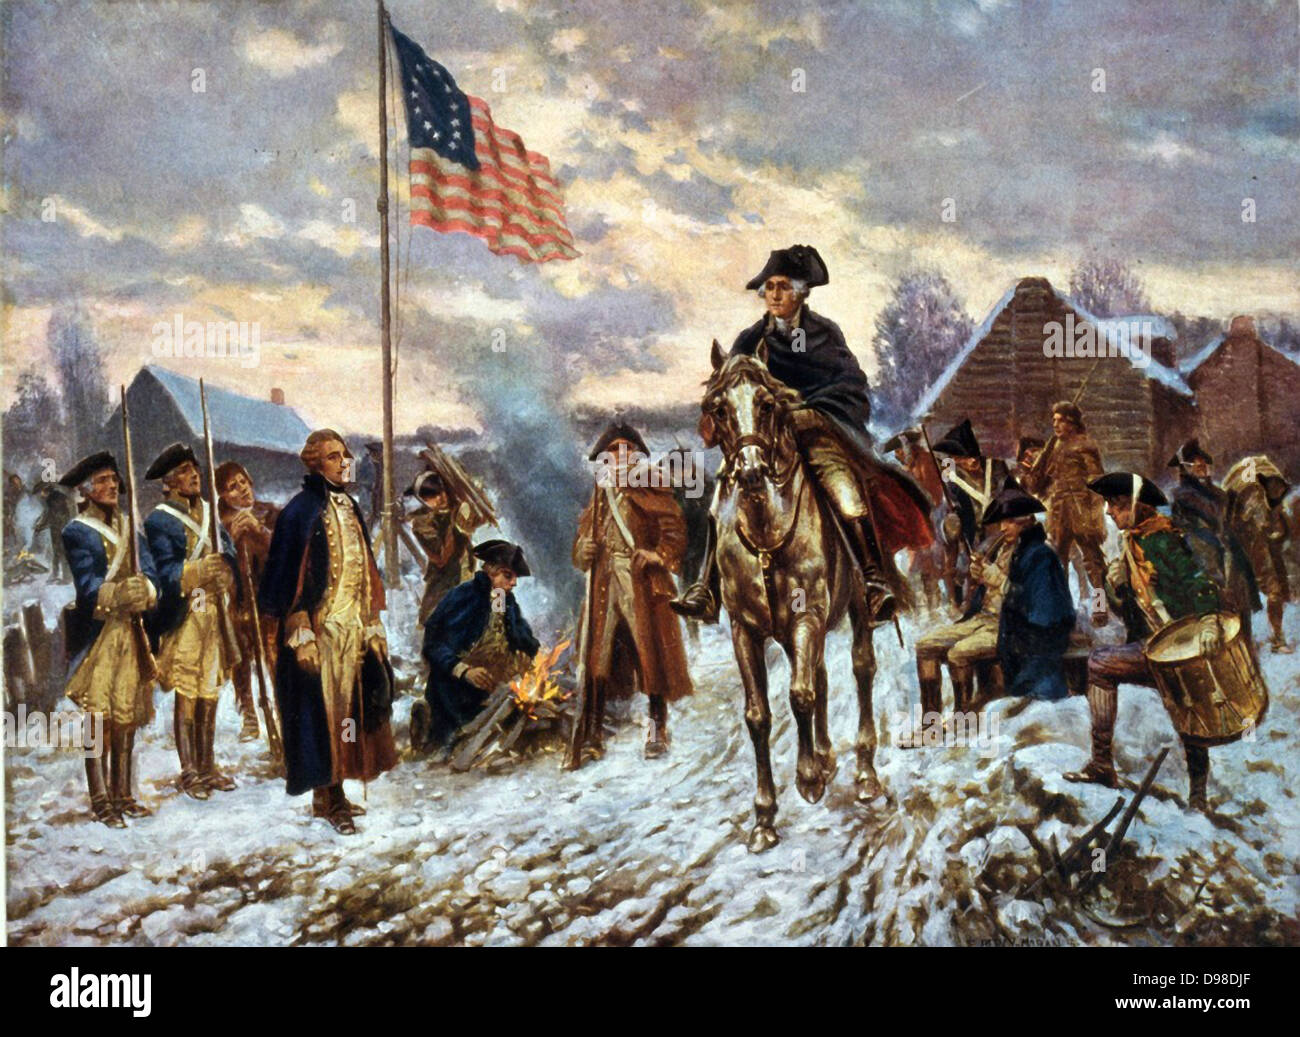 Revolutionary War 1775-1783 (American War of Independence): 'Washington at  Valley